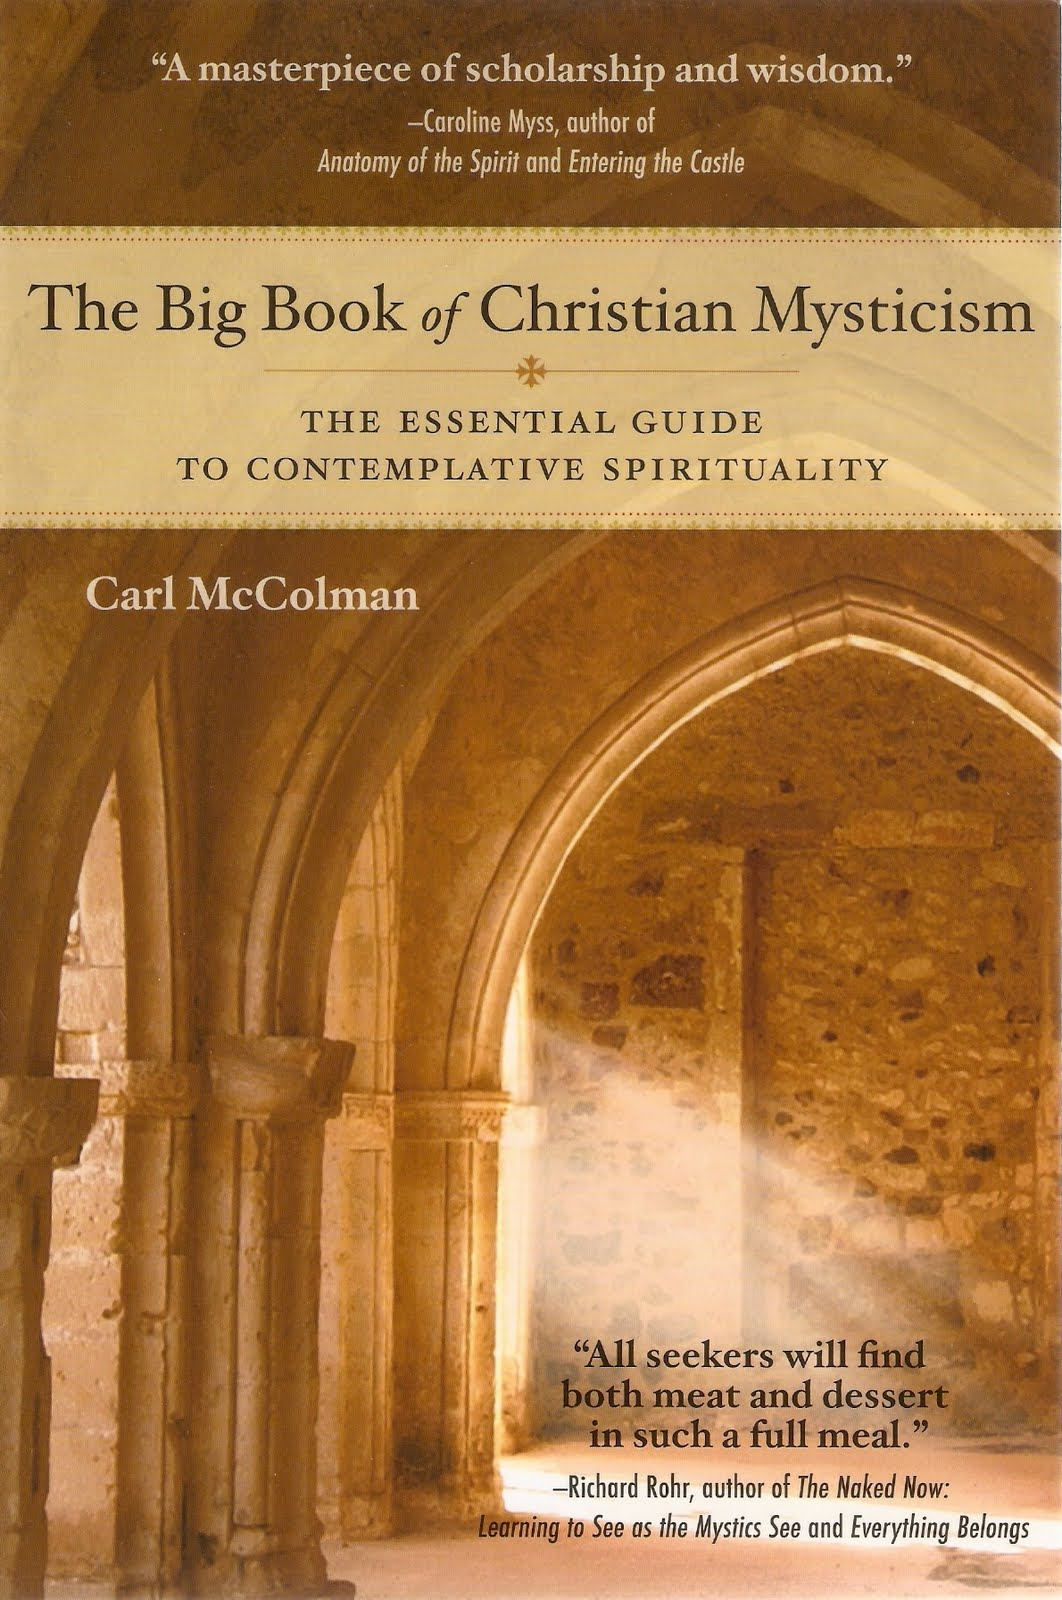 Christian mysticism Research paper Example hcpaperysew